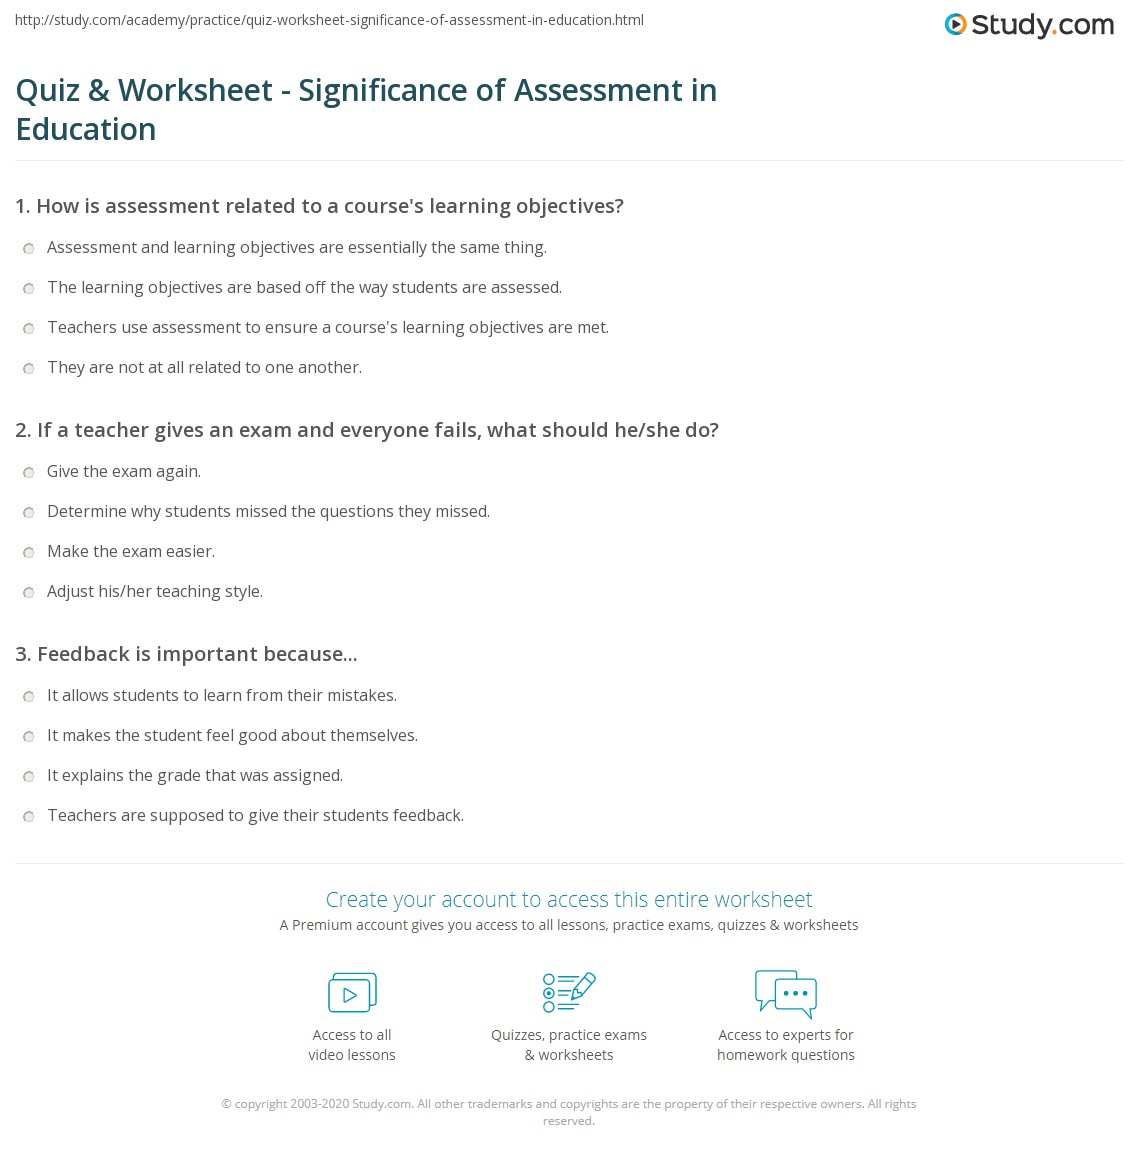 Quiz & Worksheet - Significance of Assessment in Education | Study.com